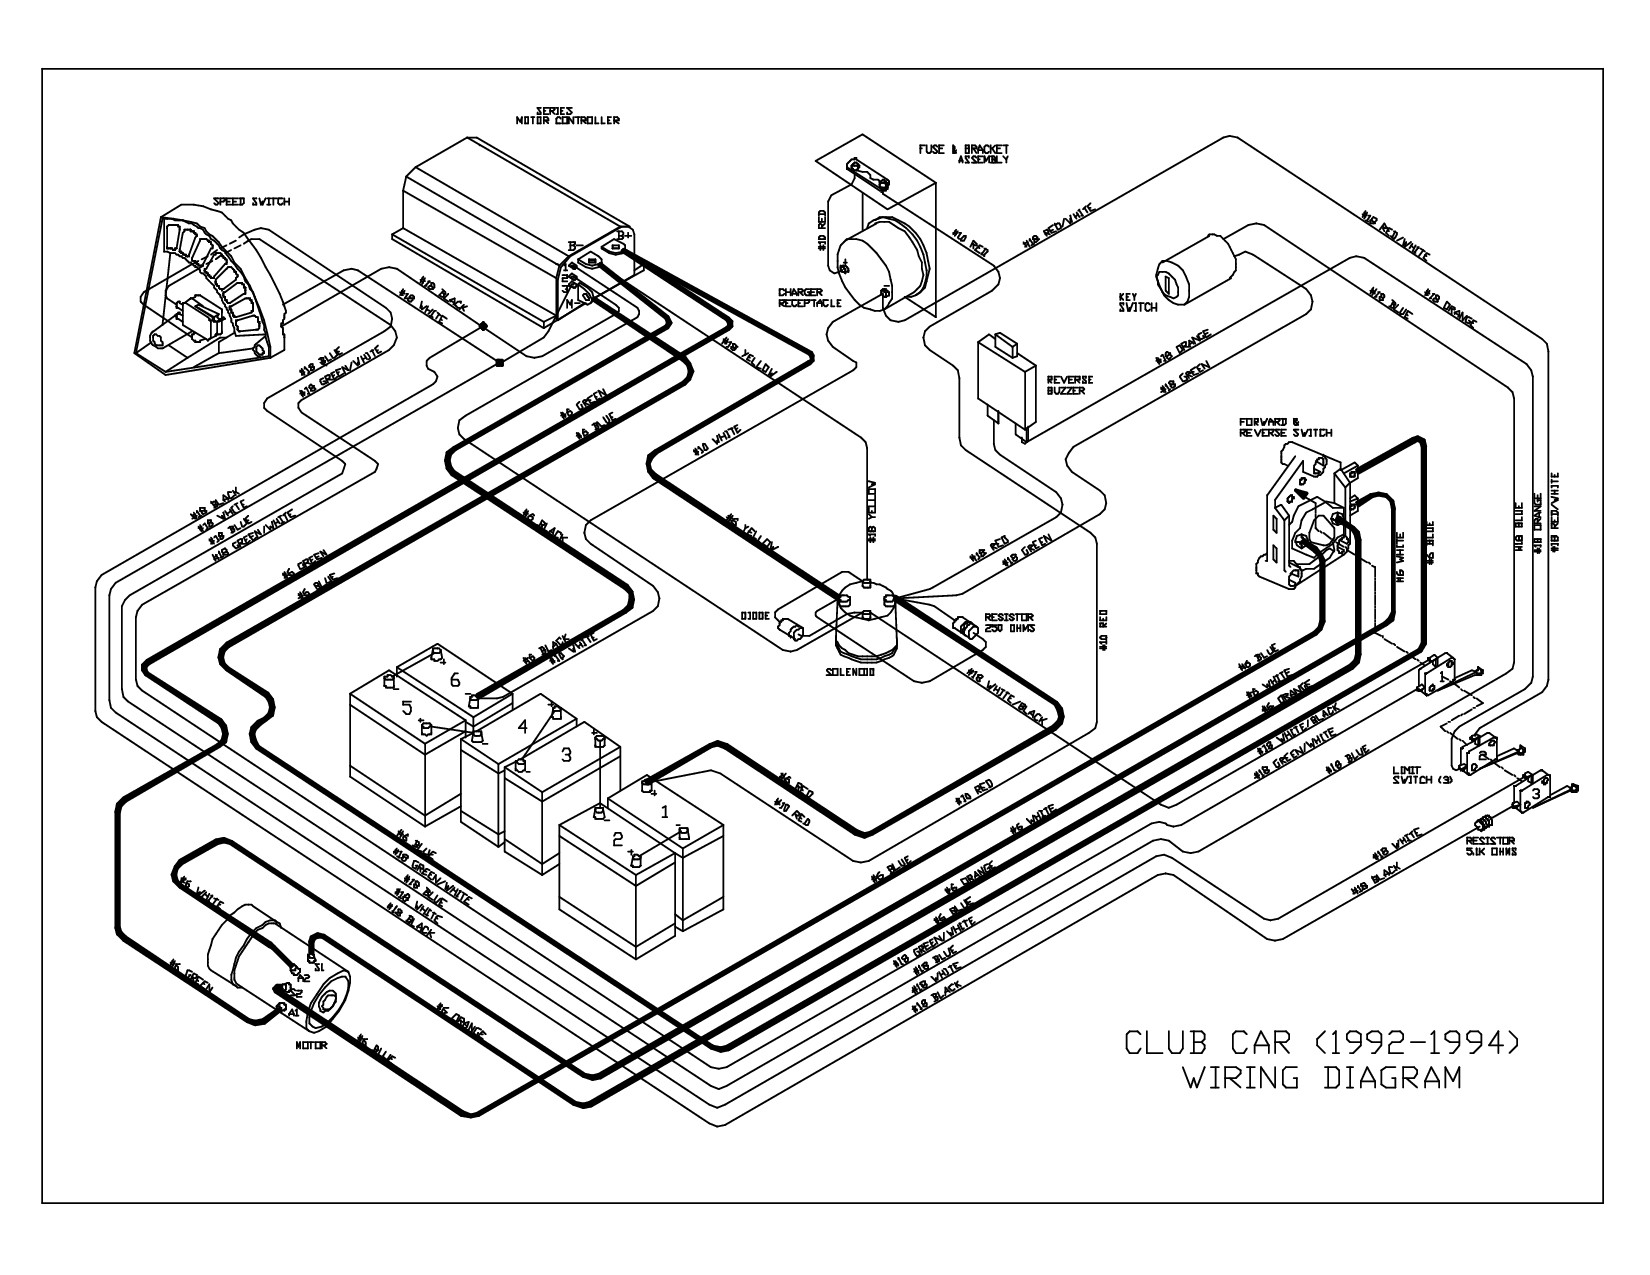 1988 Electric Club Car Schematic 2b775 Club Car Electric Wiring Diagram Of 1988 Electric Club Car Schematic